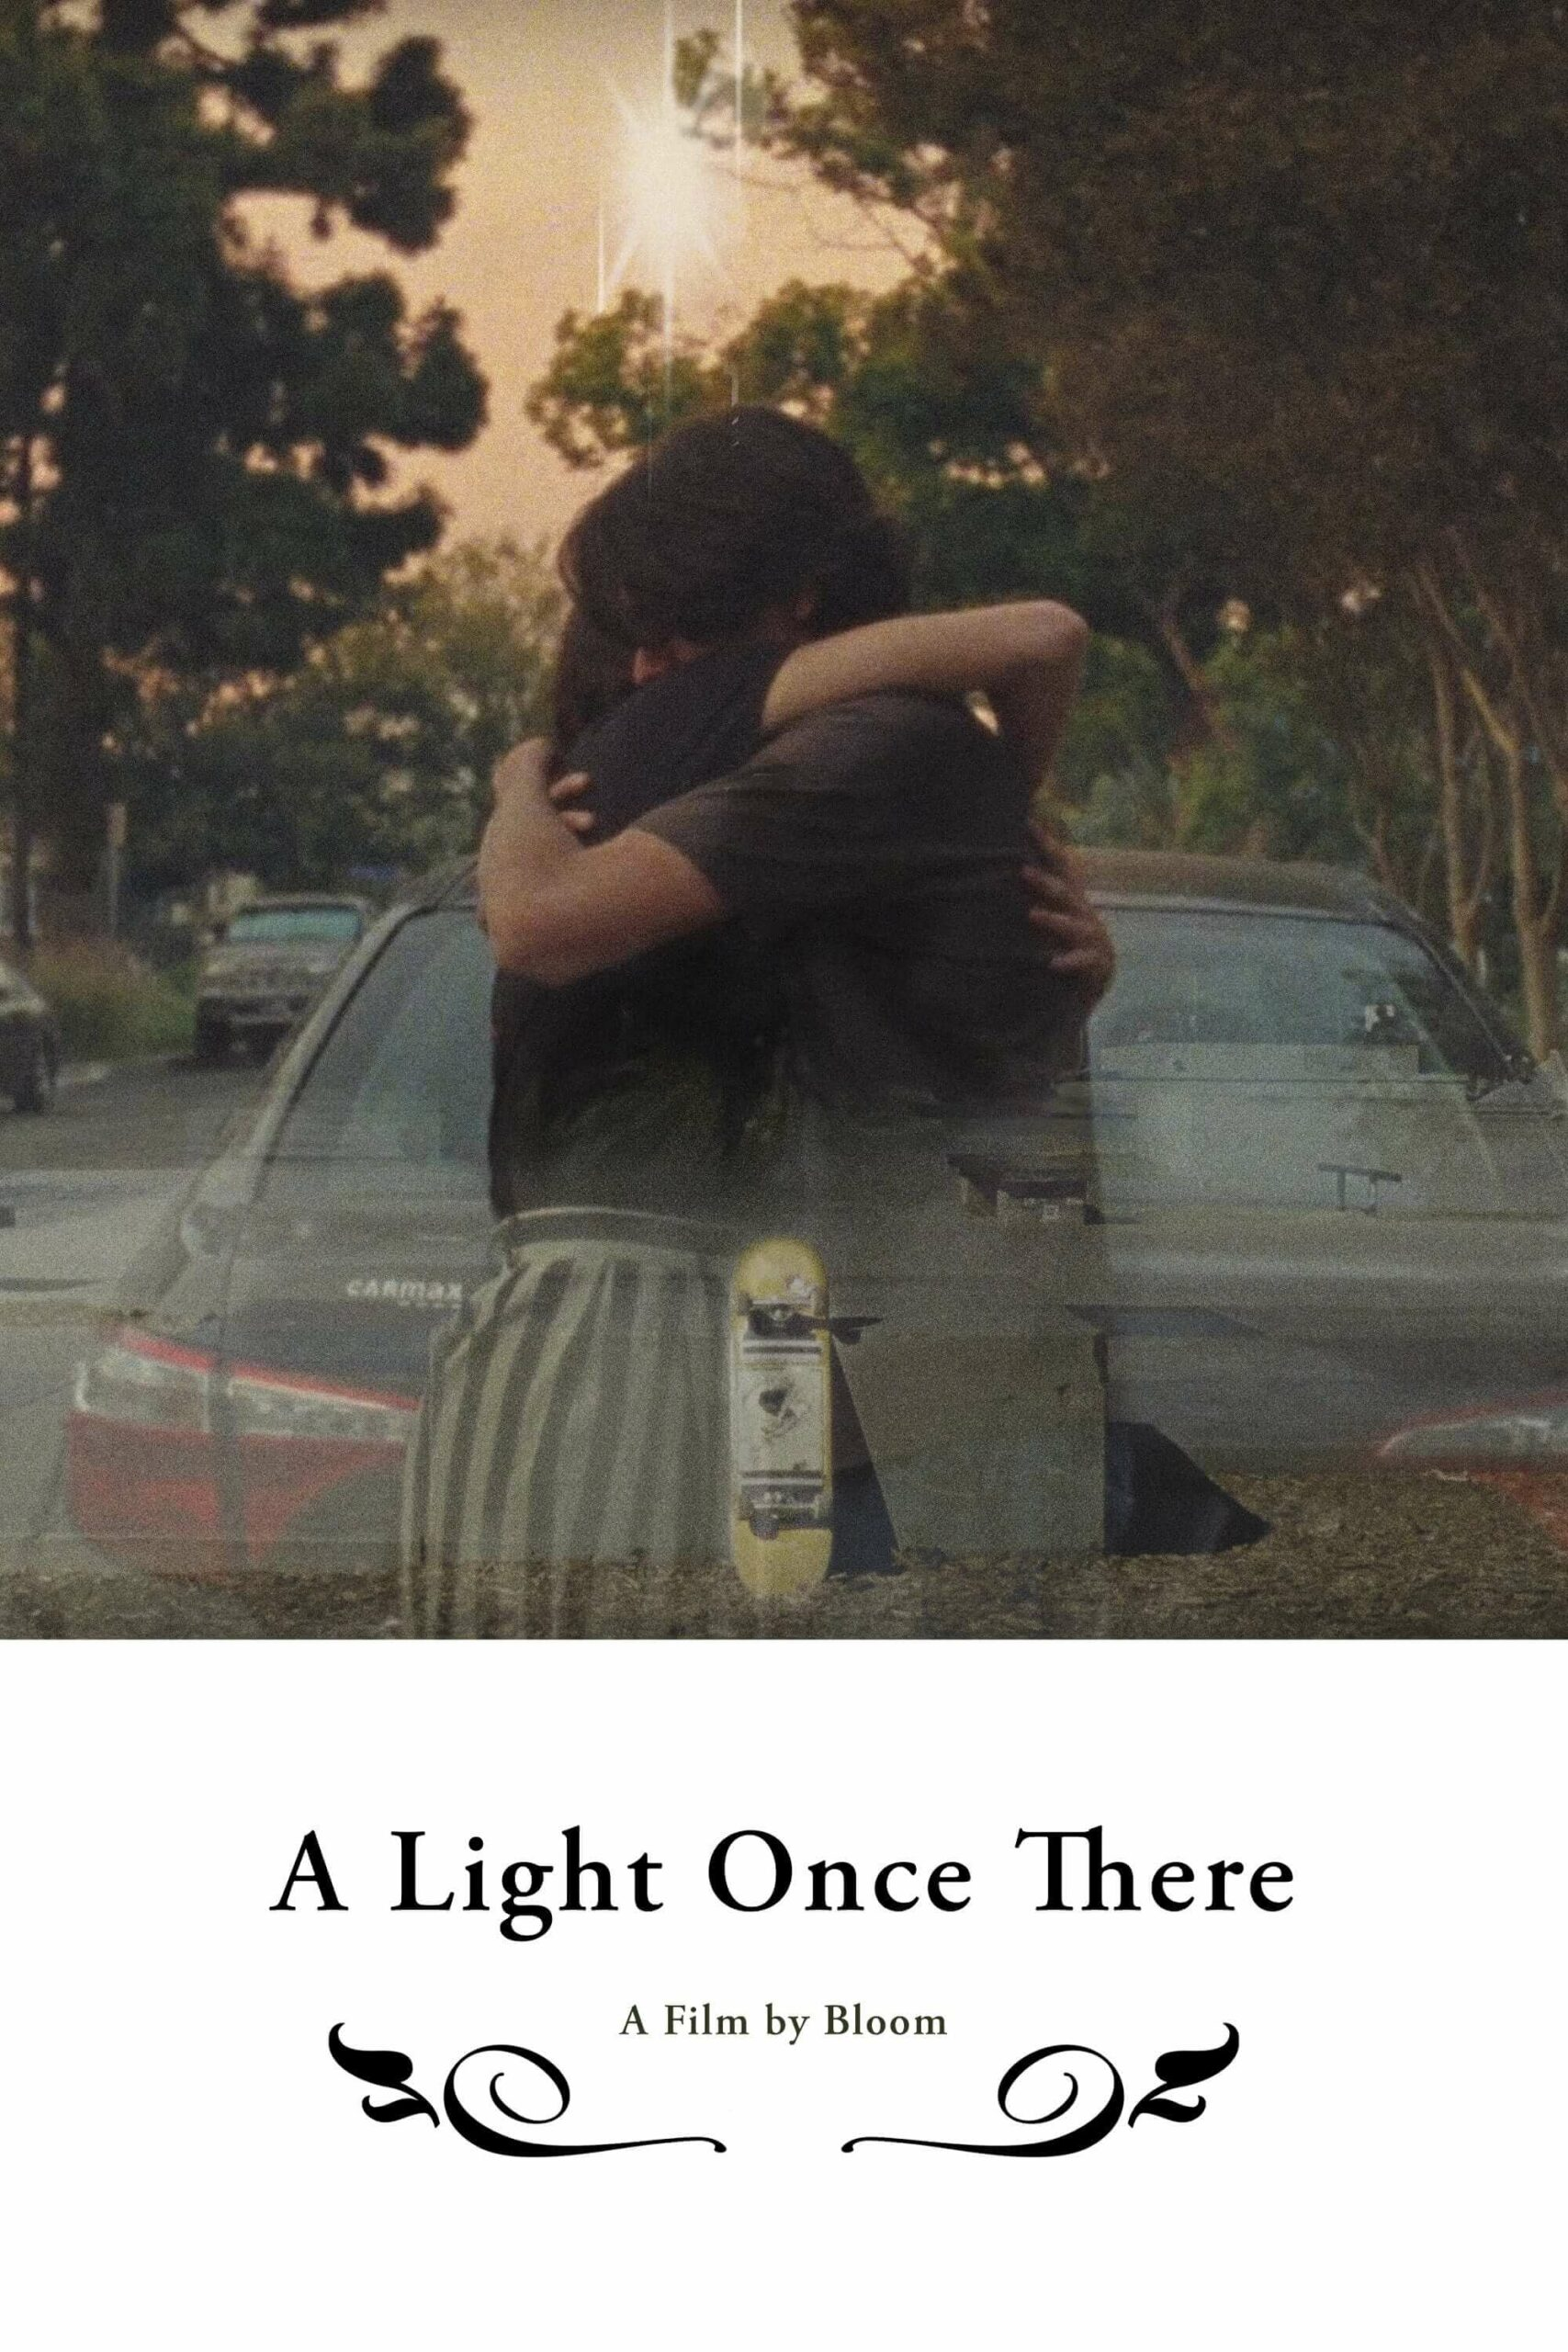 A Light There Once - Special Mention - Short of the Year Awards 2020